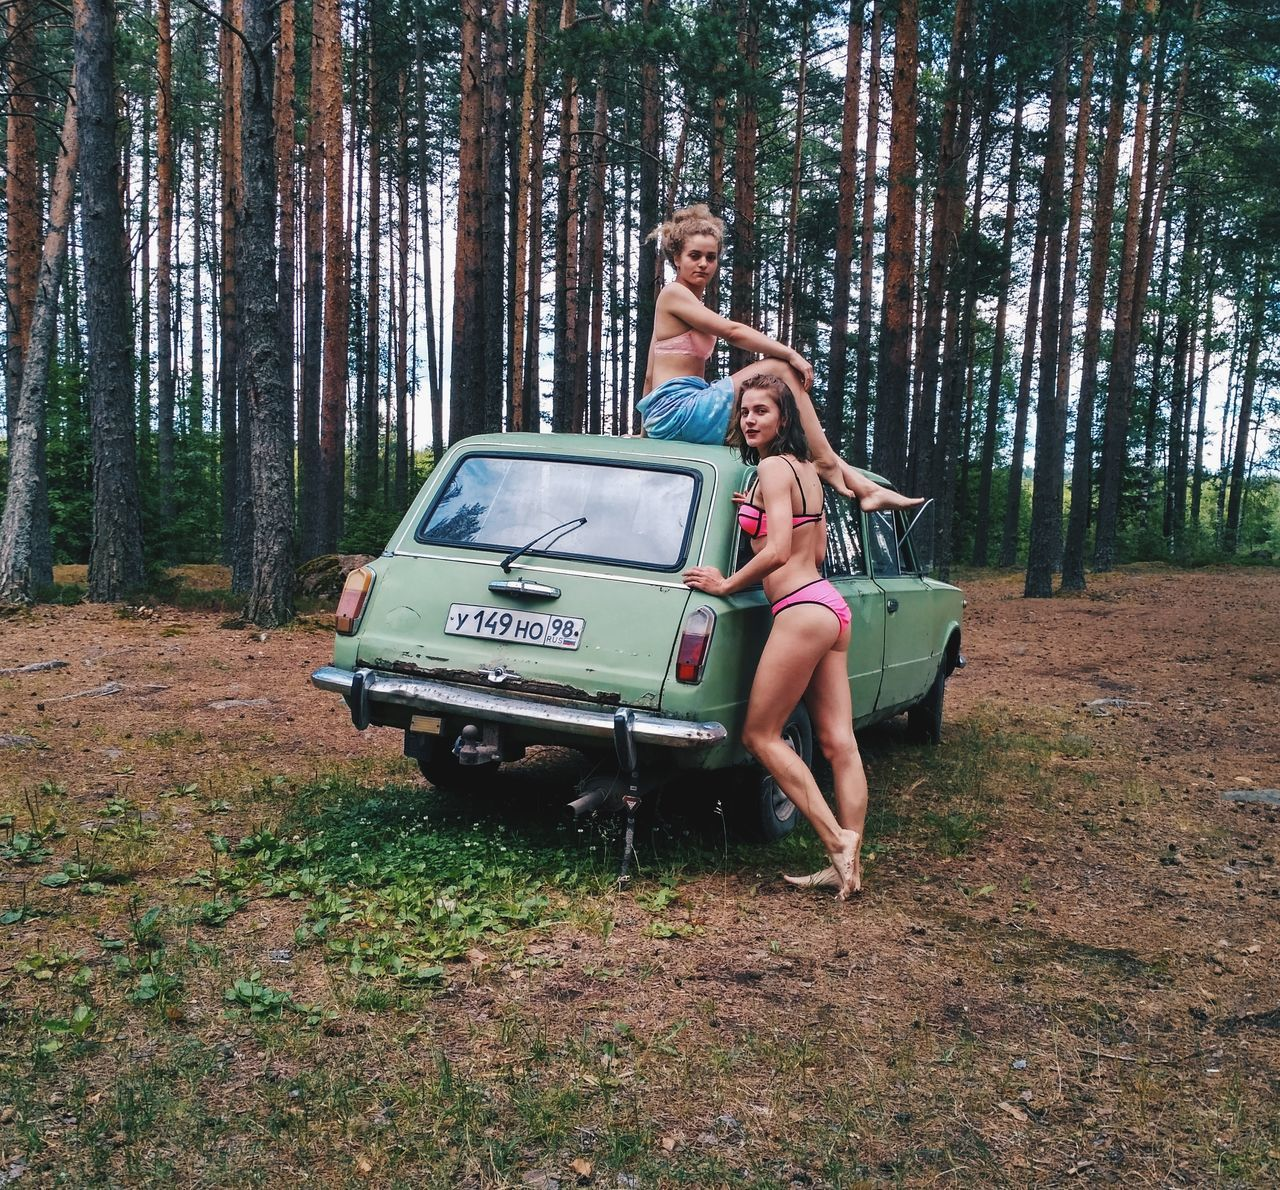 tree, two people, forest, young adult, car, young women, leisure activity, standing, full length, outdoors, beautiful woman, nature, day, fashion, real people, transportation, lifestyles, women, holding, smiling, adventure, togetherness, beauty in nature, adult, adults only, people